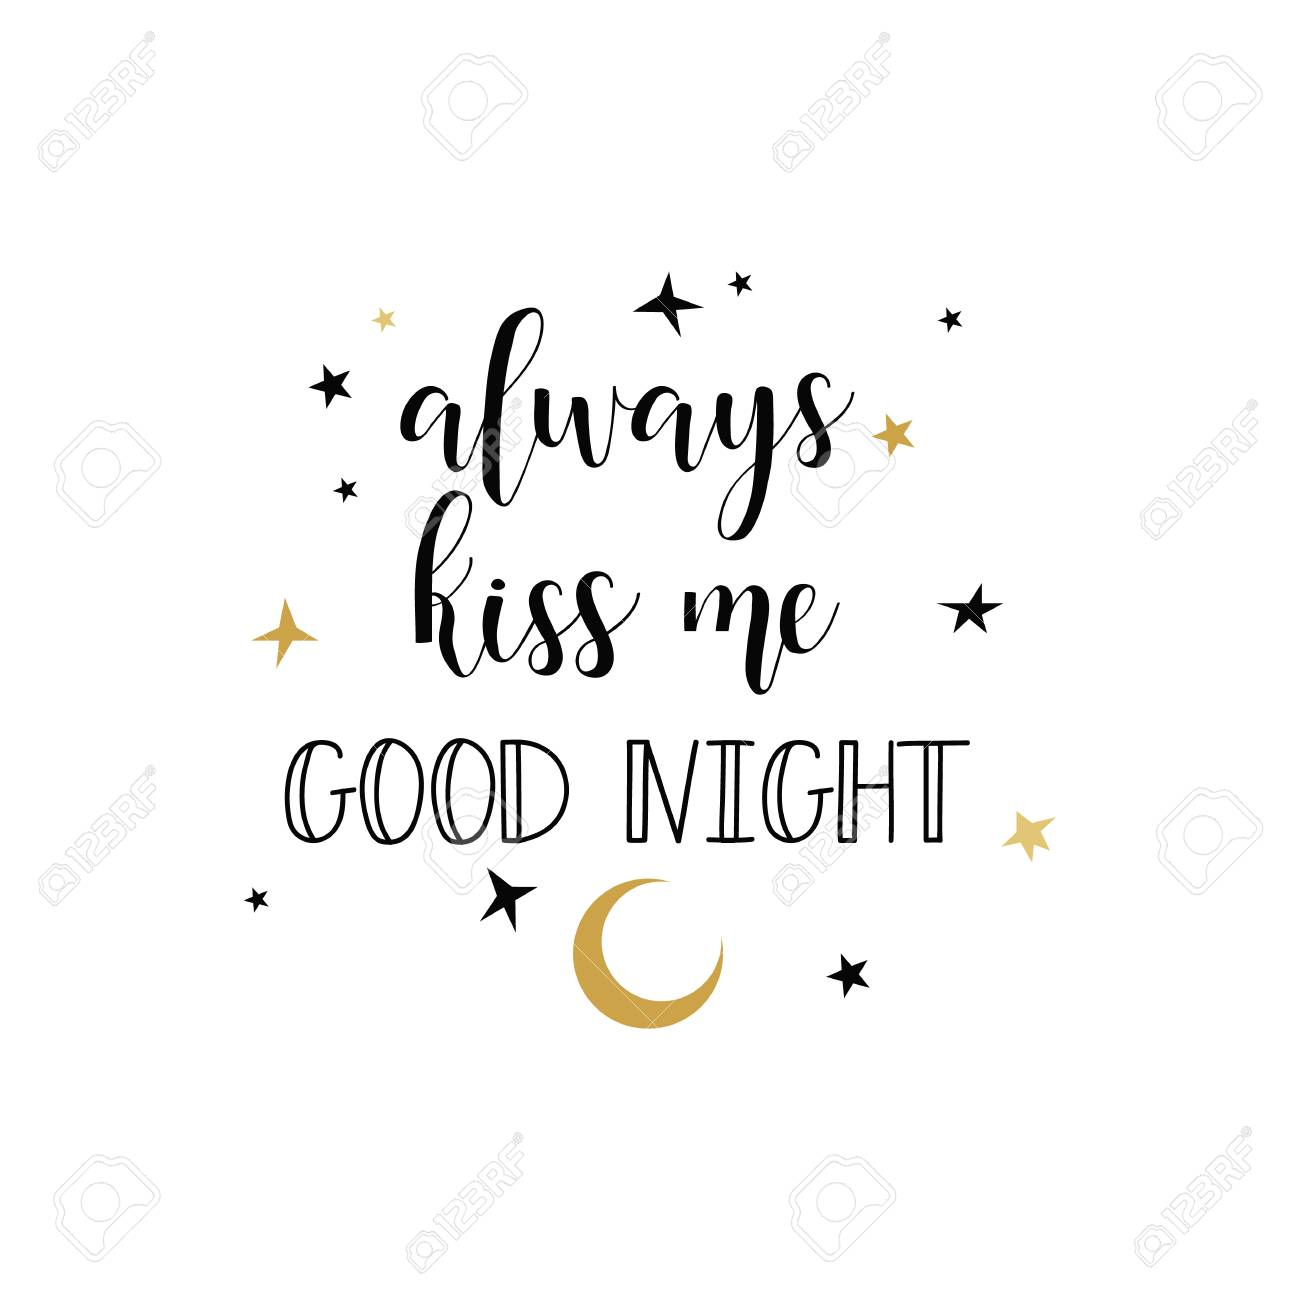 Always Kiss Me Good Night Modern Brush Calligraphy Royalty Free Cliparts Vectors And Stock Illustration Image 95880508